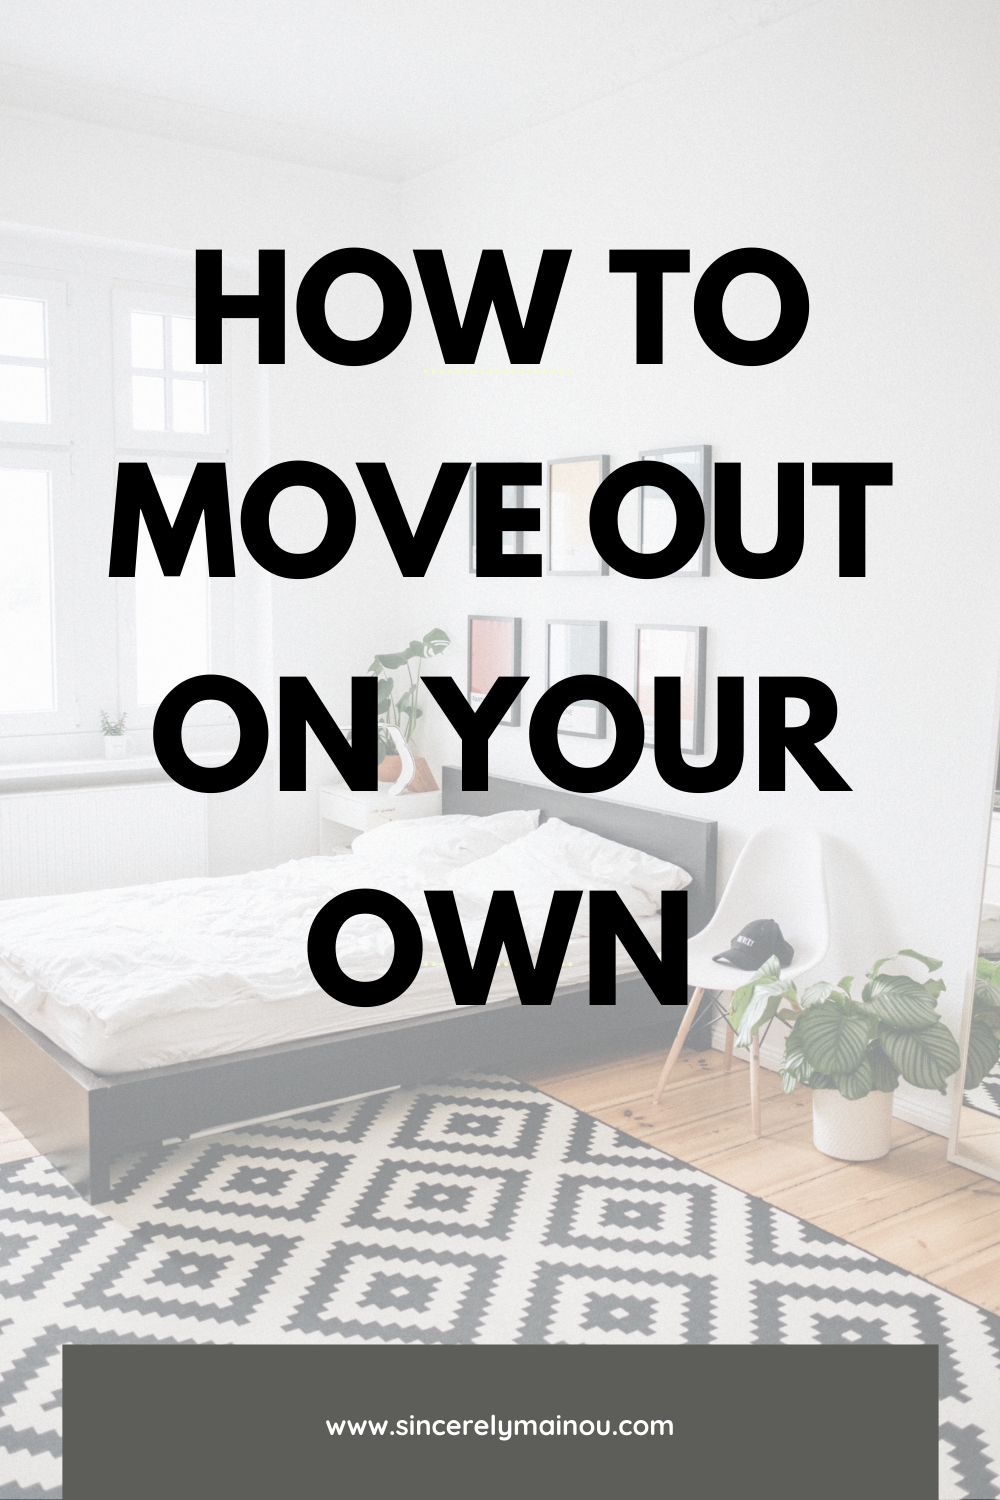 Moving out for the first time? How to move out on your own. Sharing some tips to help your move easier. What to think about when moving out. #apartmentliving #movingout